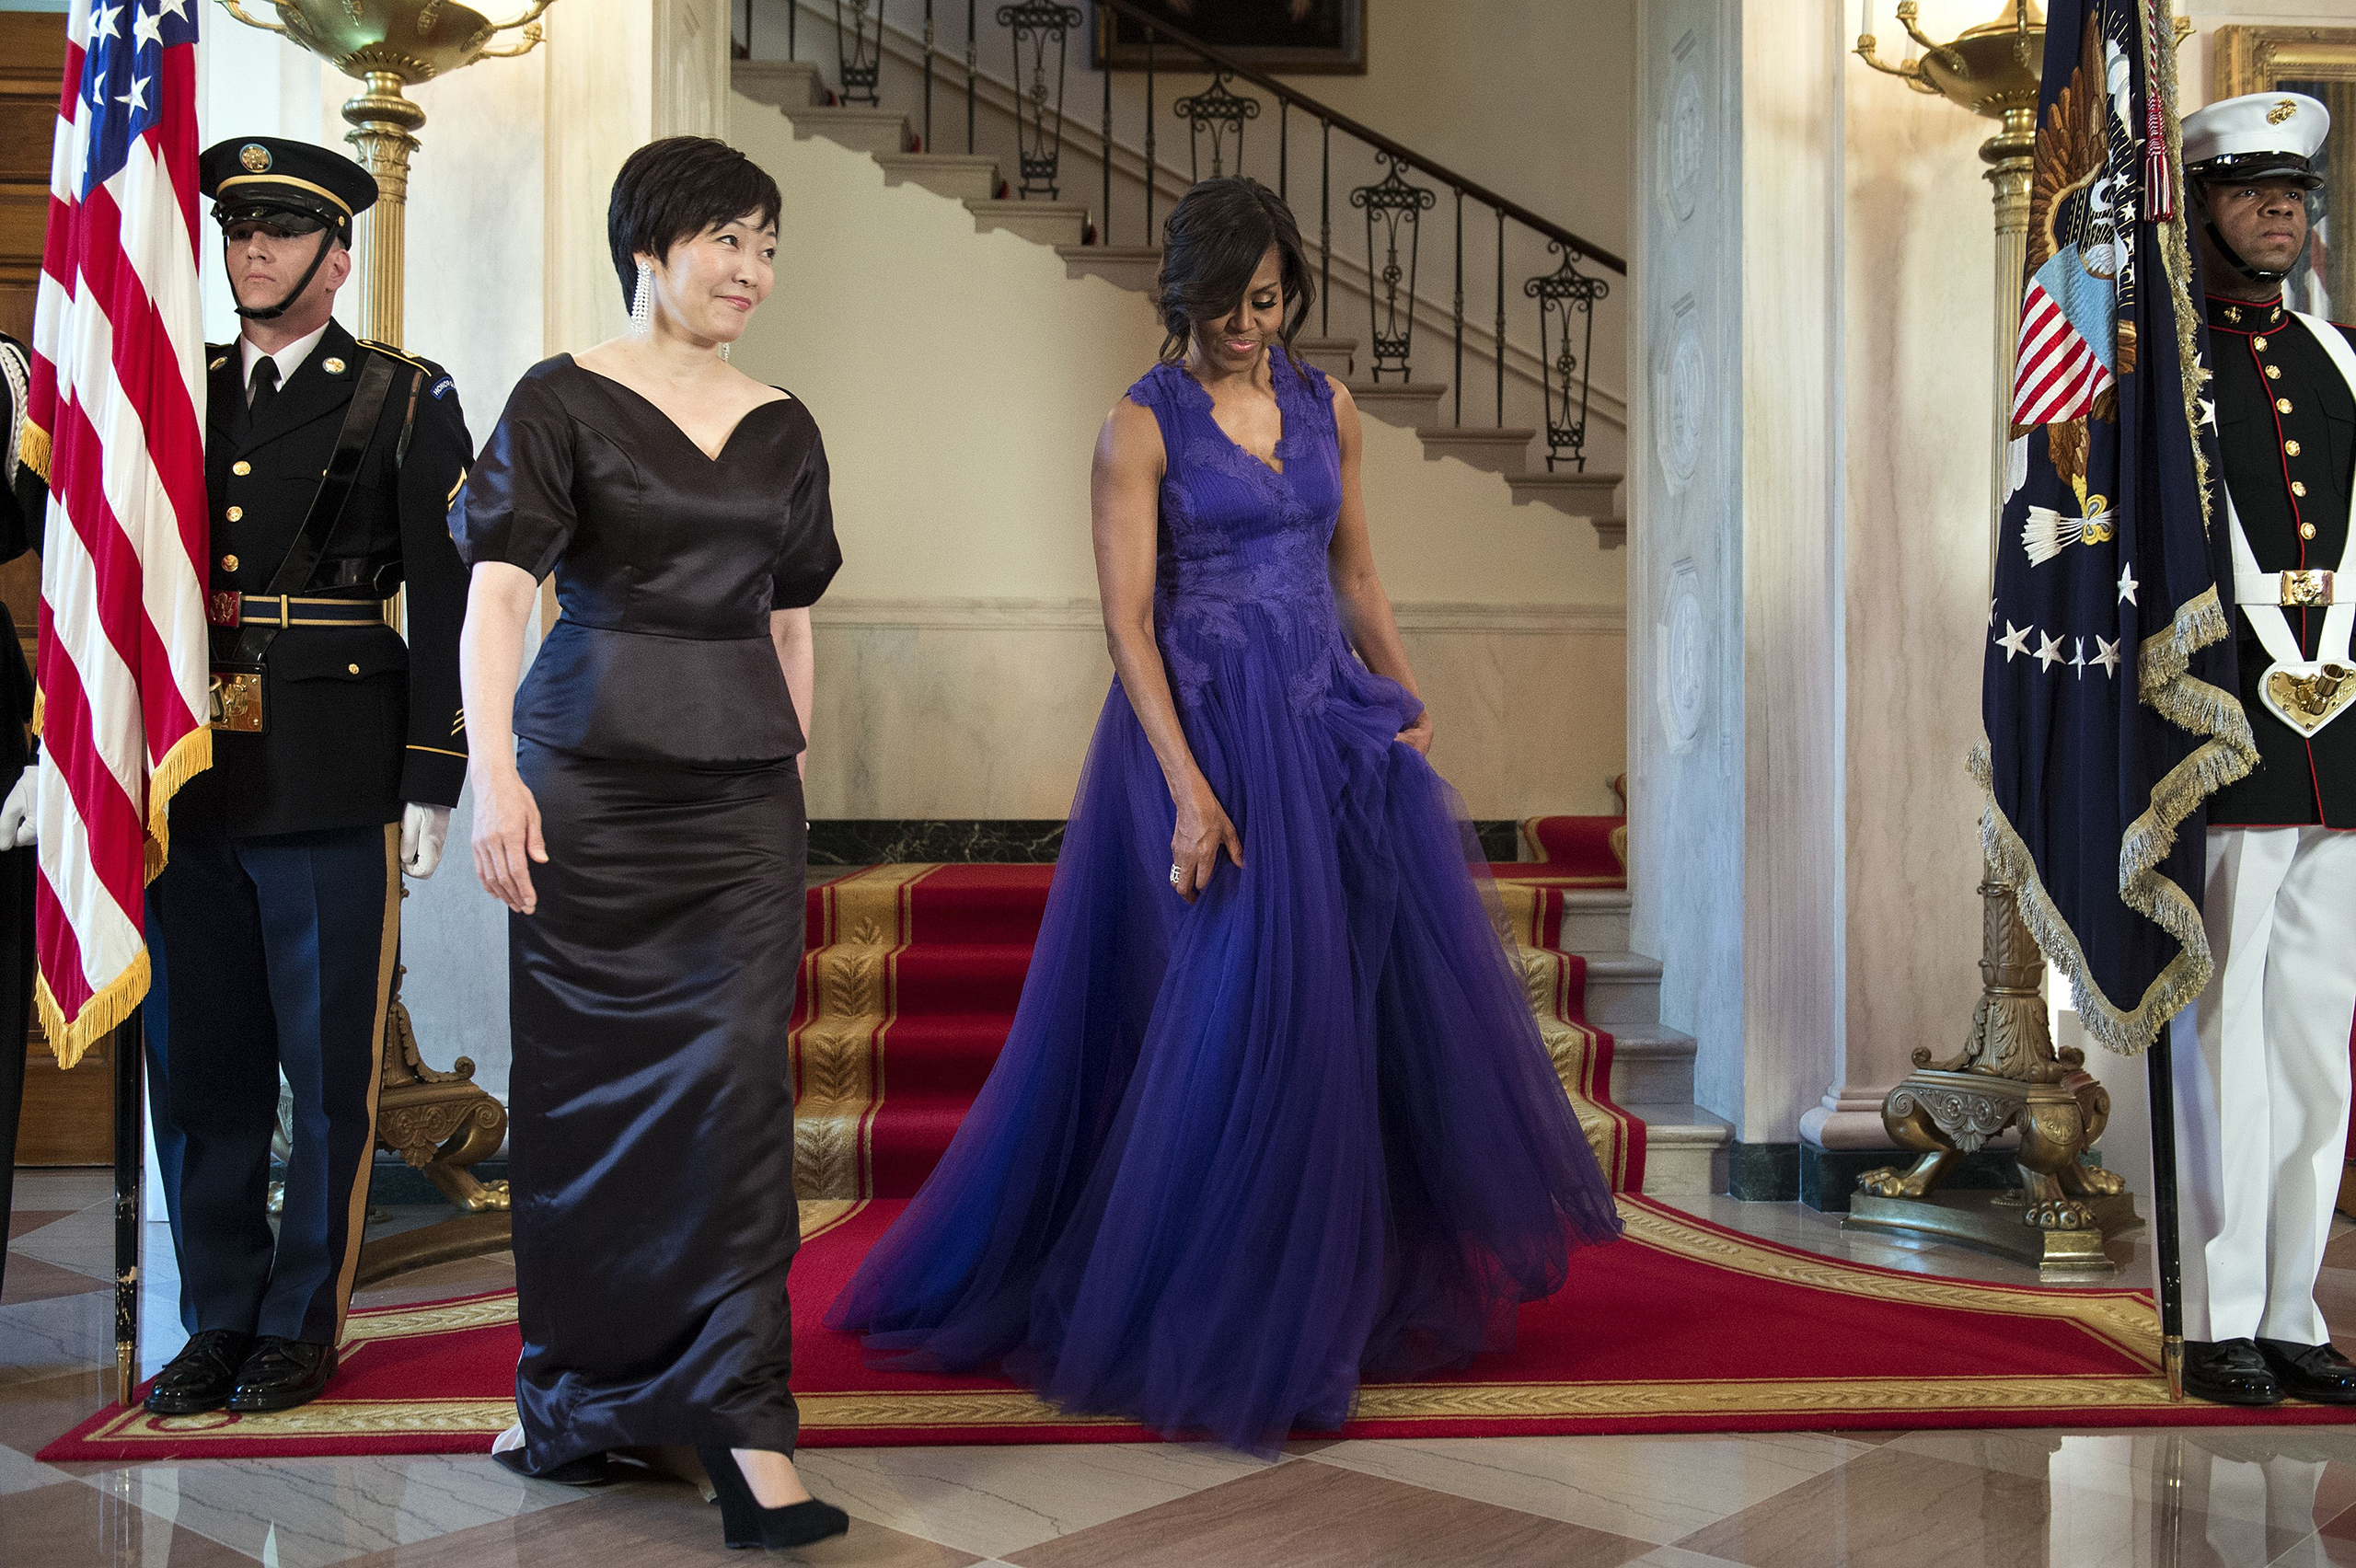 Akie Abe (L) and Michelle Obama walk to a state dinner in the White House in Washington, D.C., on April 28, 2015.